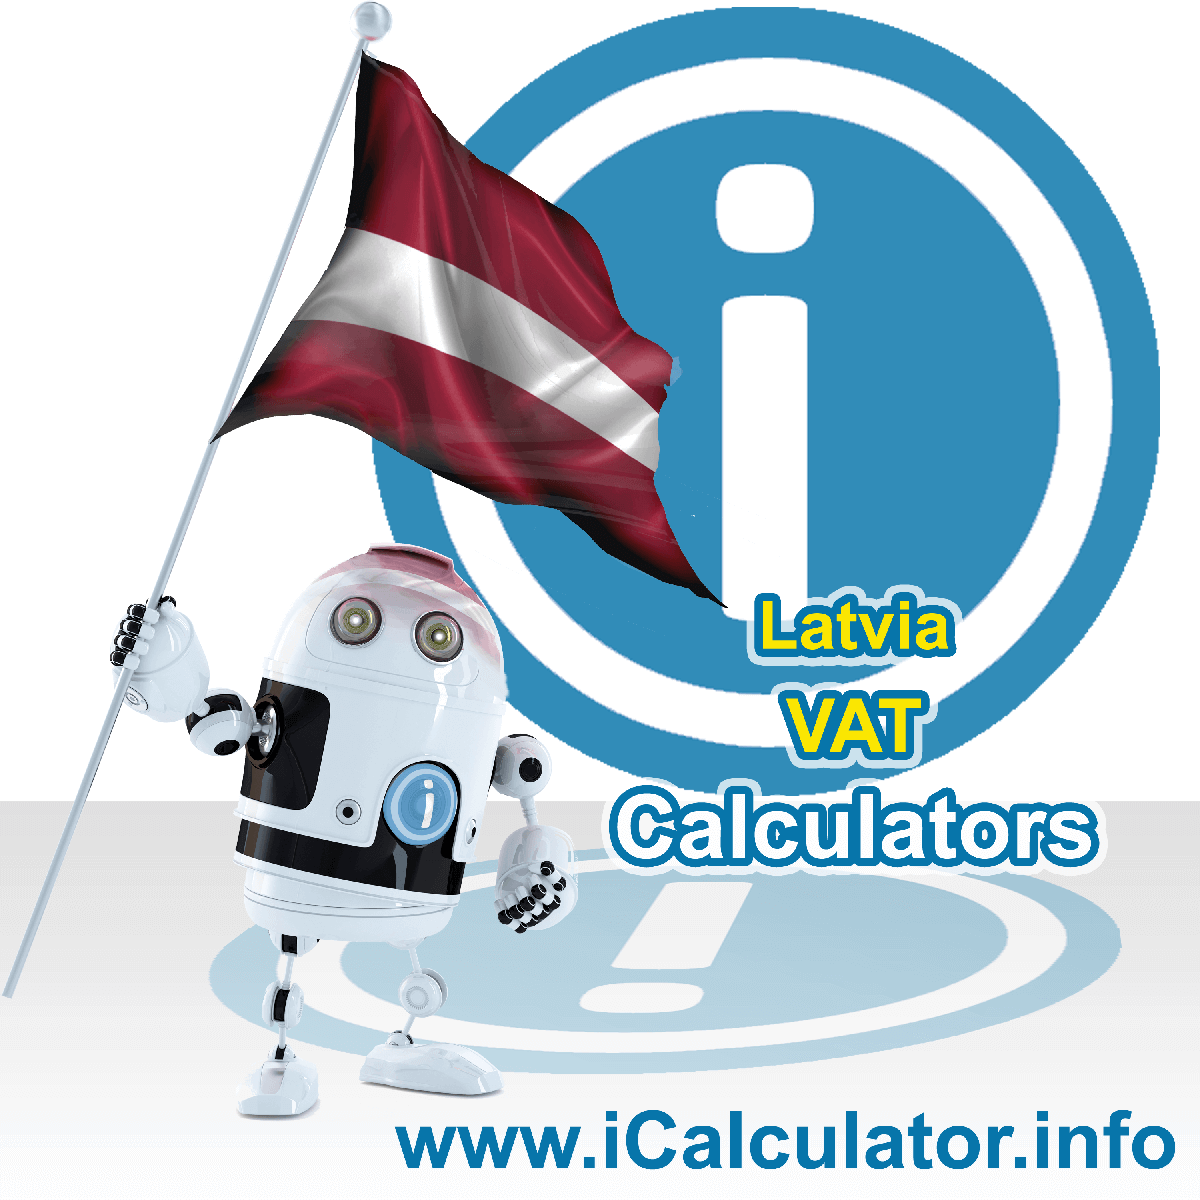 Latvia VAT Calculator. This image shows the Latvia flag and information relating to the VAT formula used for calculating Value Added Tax in Latvia using the Latvia VAT Calculator in 2020